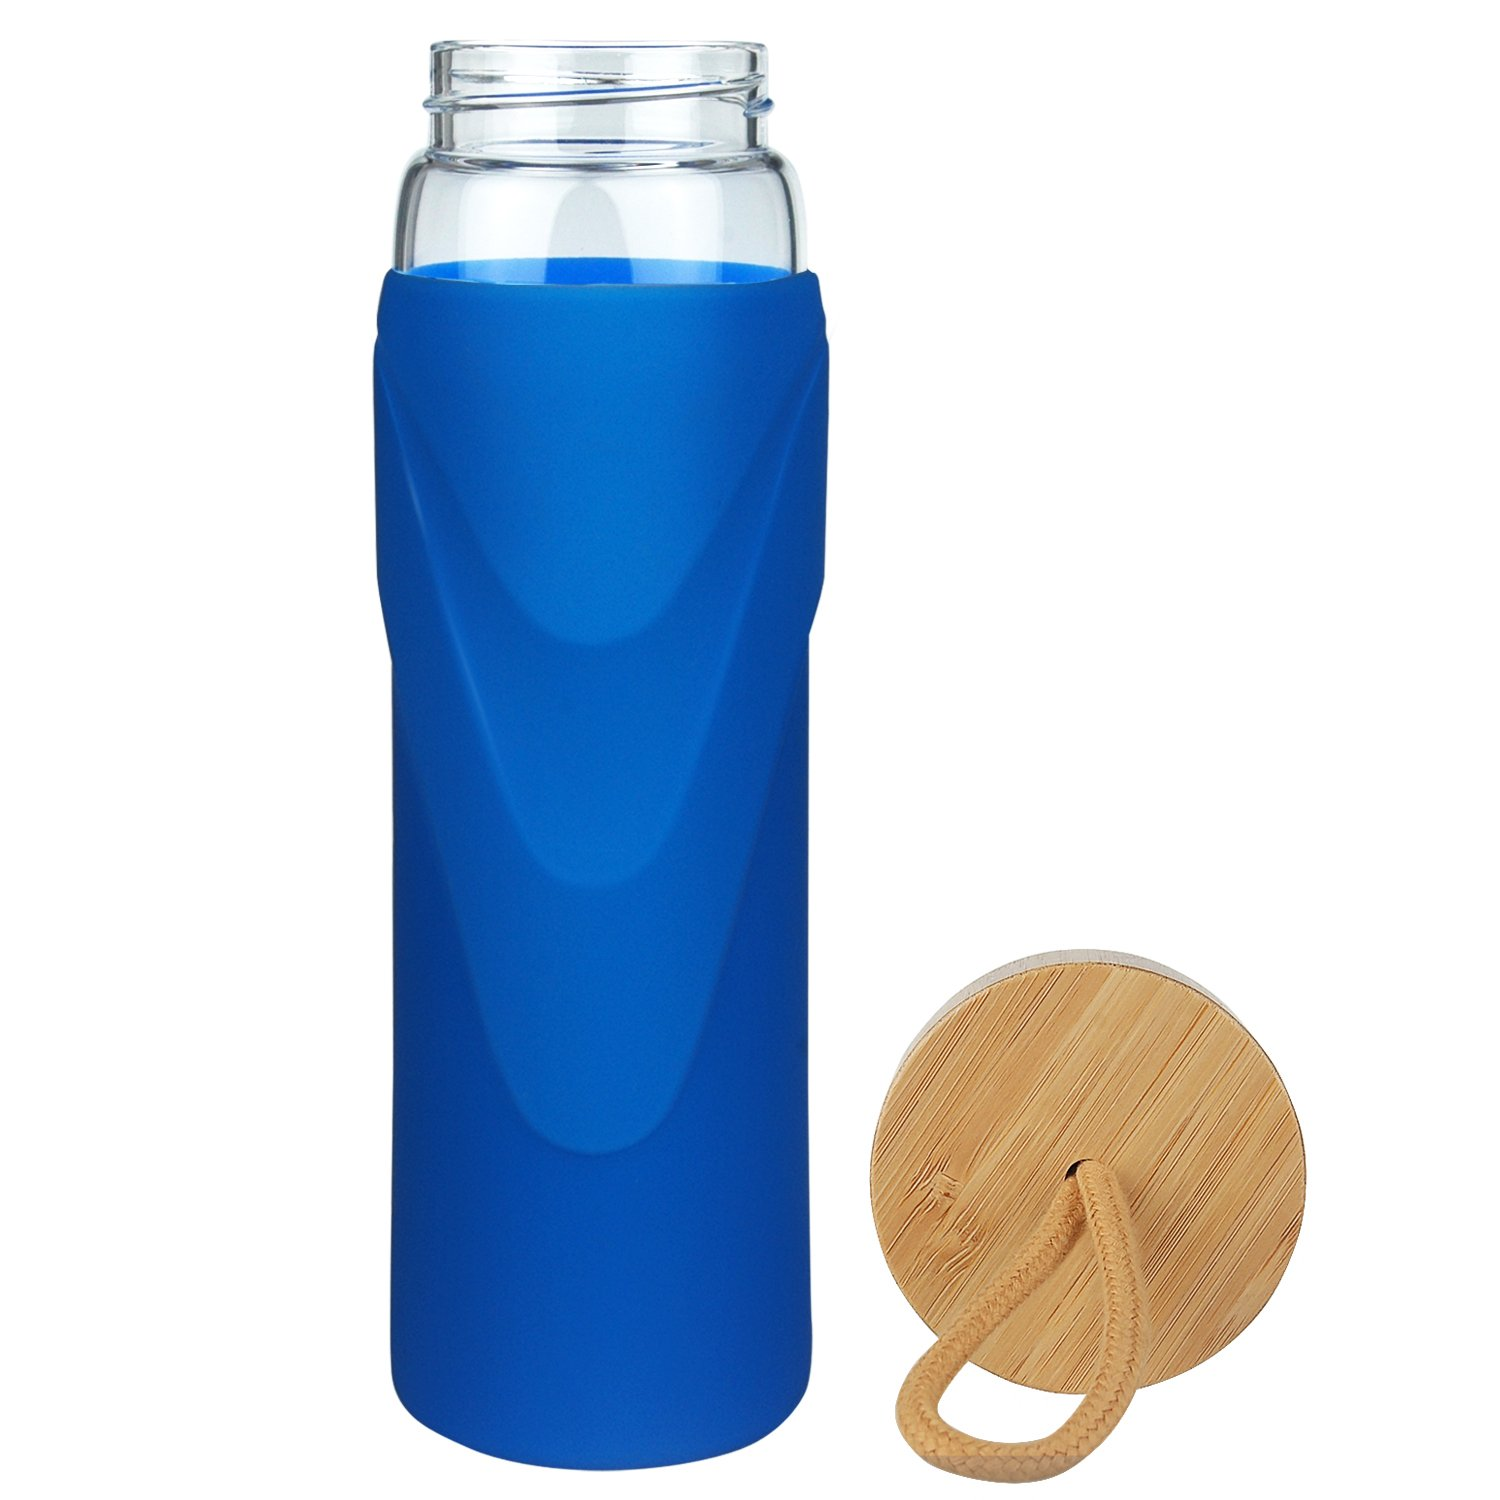 652da0920dc1 Origin - Best WIDEMOUTH BPA-Free Glass Water Bottle with Protective  Silicone Sleeve and Bamboo Lid - Dishwasher Safe (Royal Blue, 32 Ounce)